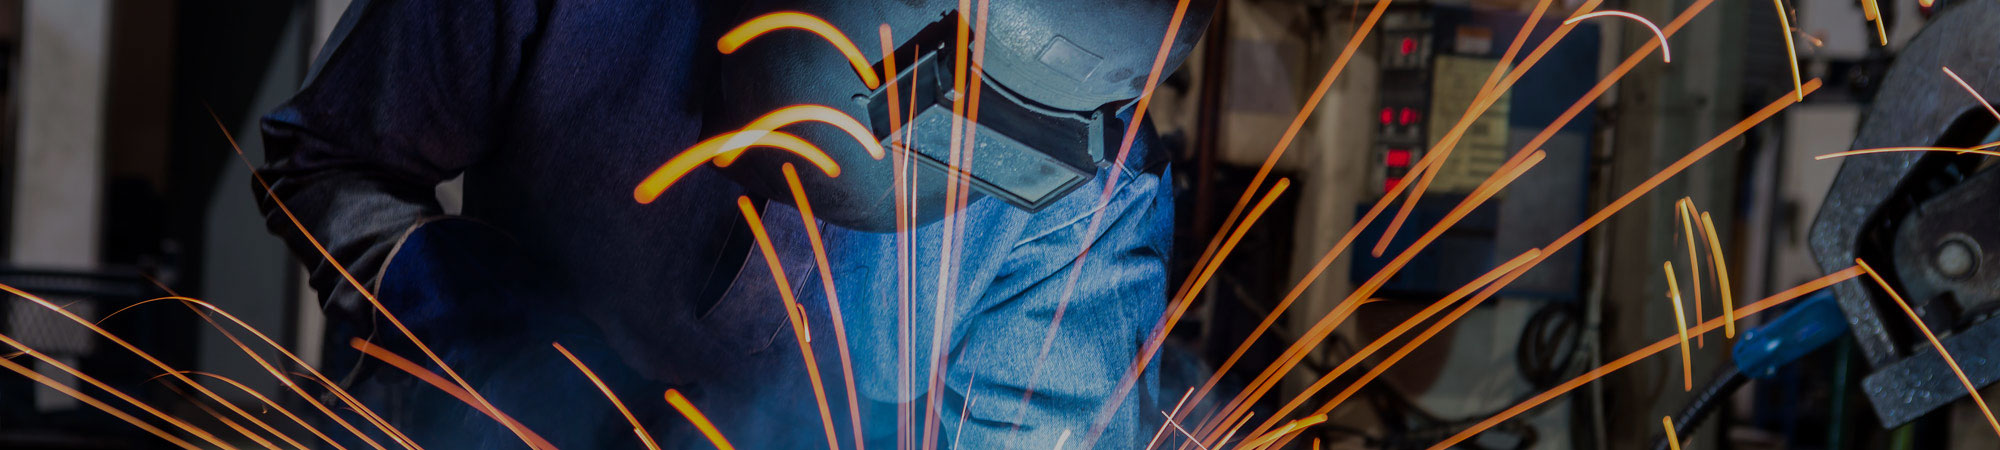 Fabrication & Welding Training Course in Wrexham